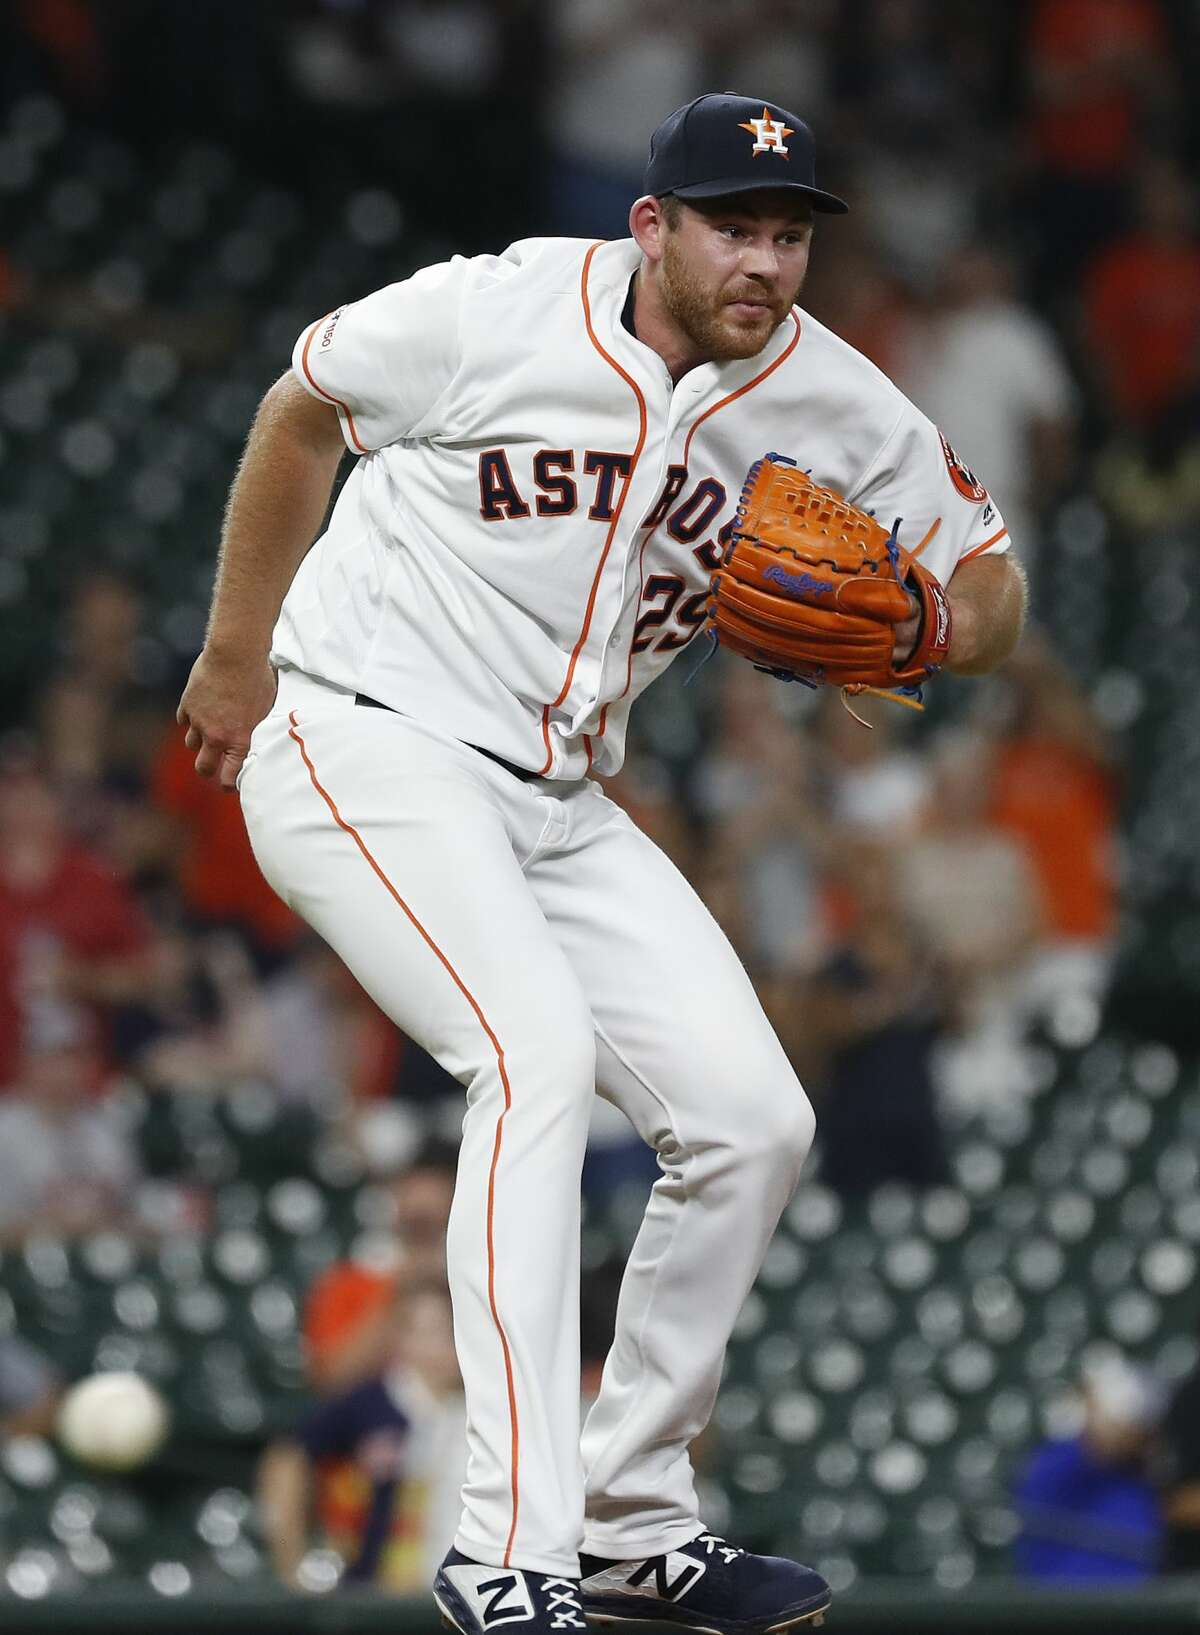 Houston Astros relief pitcher Joe Biagini (29) spins around as Tampa Bay Rays Austin Meadows grounded out during the ninth inning of an MLB baseball game at Minute Maid Park, Tuesday, August 27, 2019.